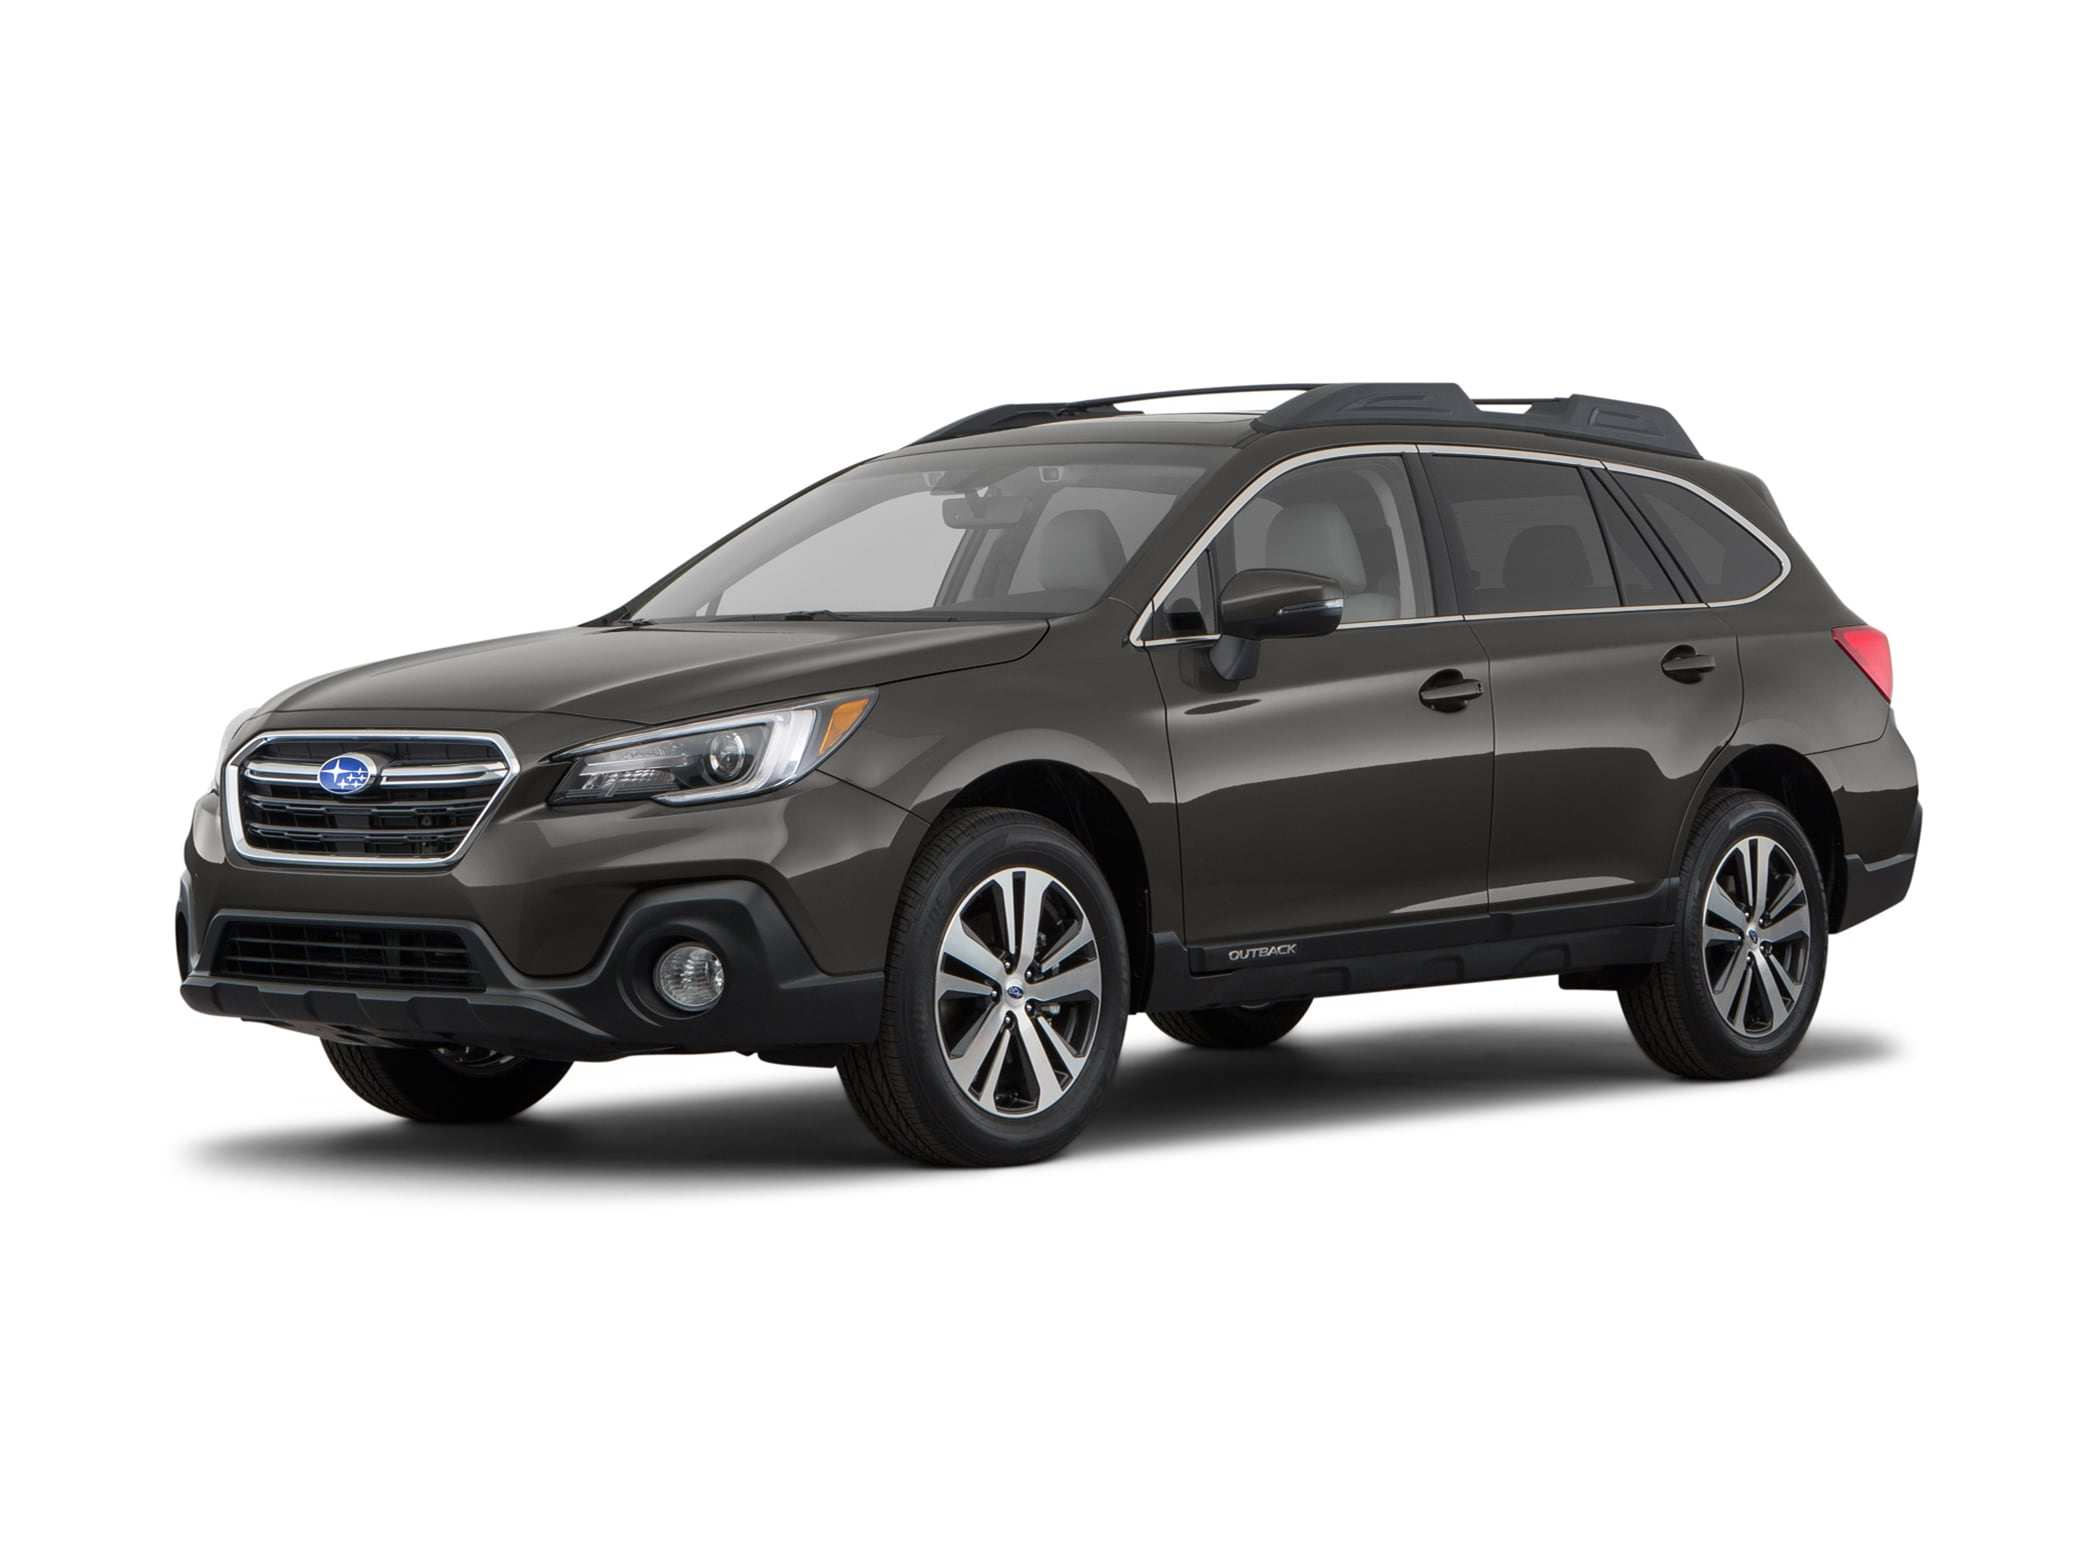 48 The 2019 Subaru Outback Photos Spy Shoot by 2019 Subaru Outback Photos